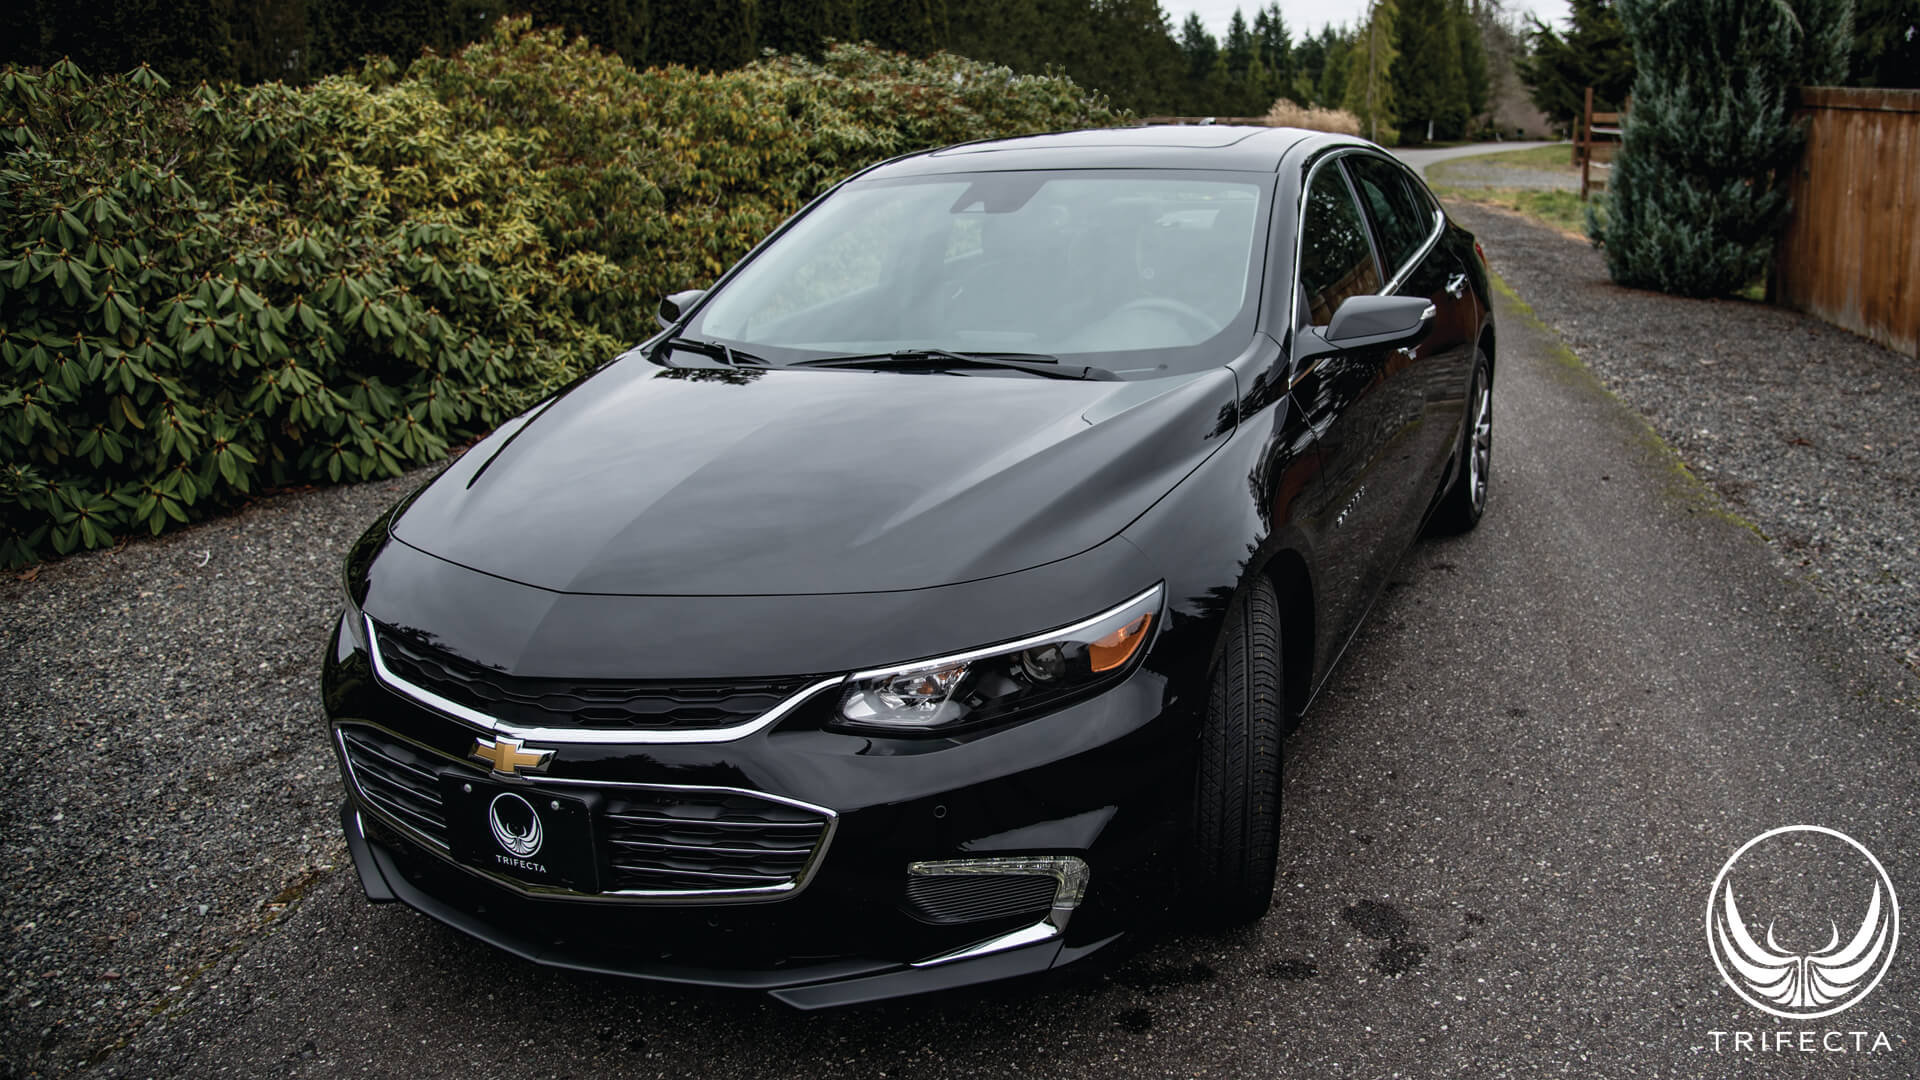 Product Review: 2016--2018+ Chevrolet Malibu - 2.0L Turbo - Advantage